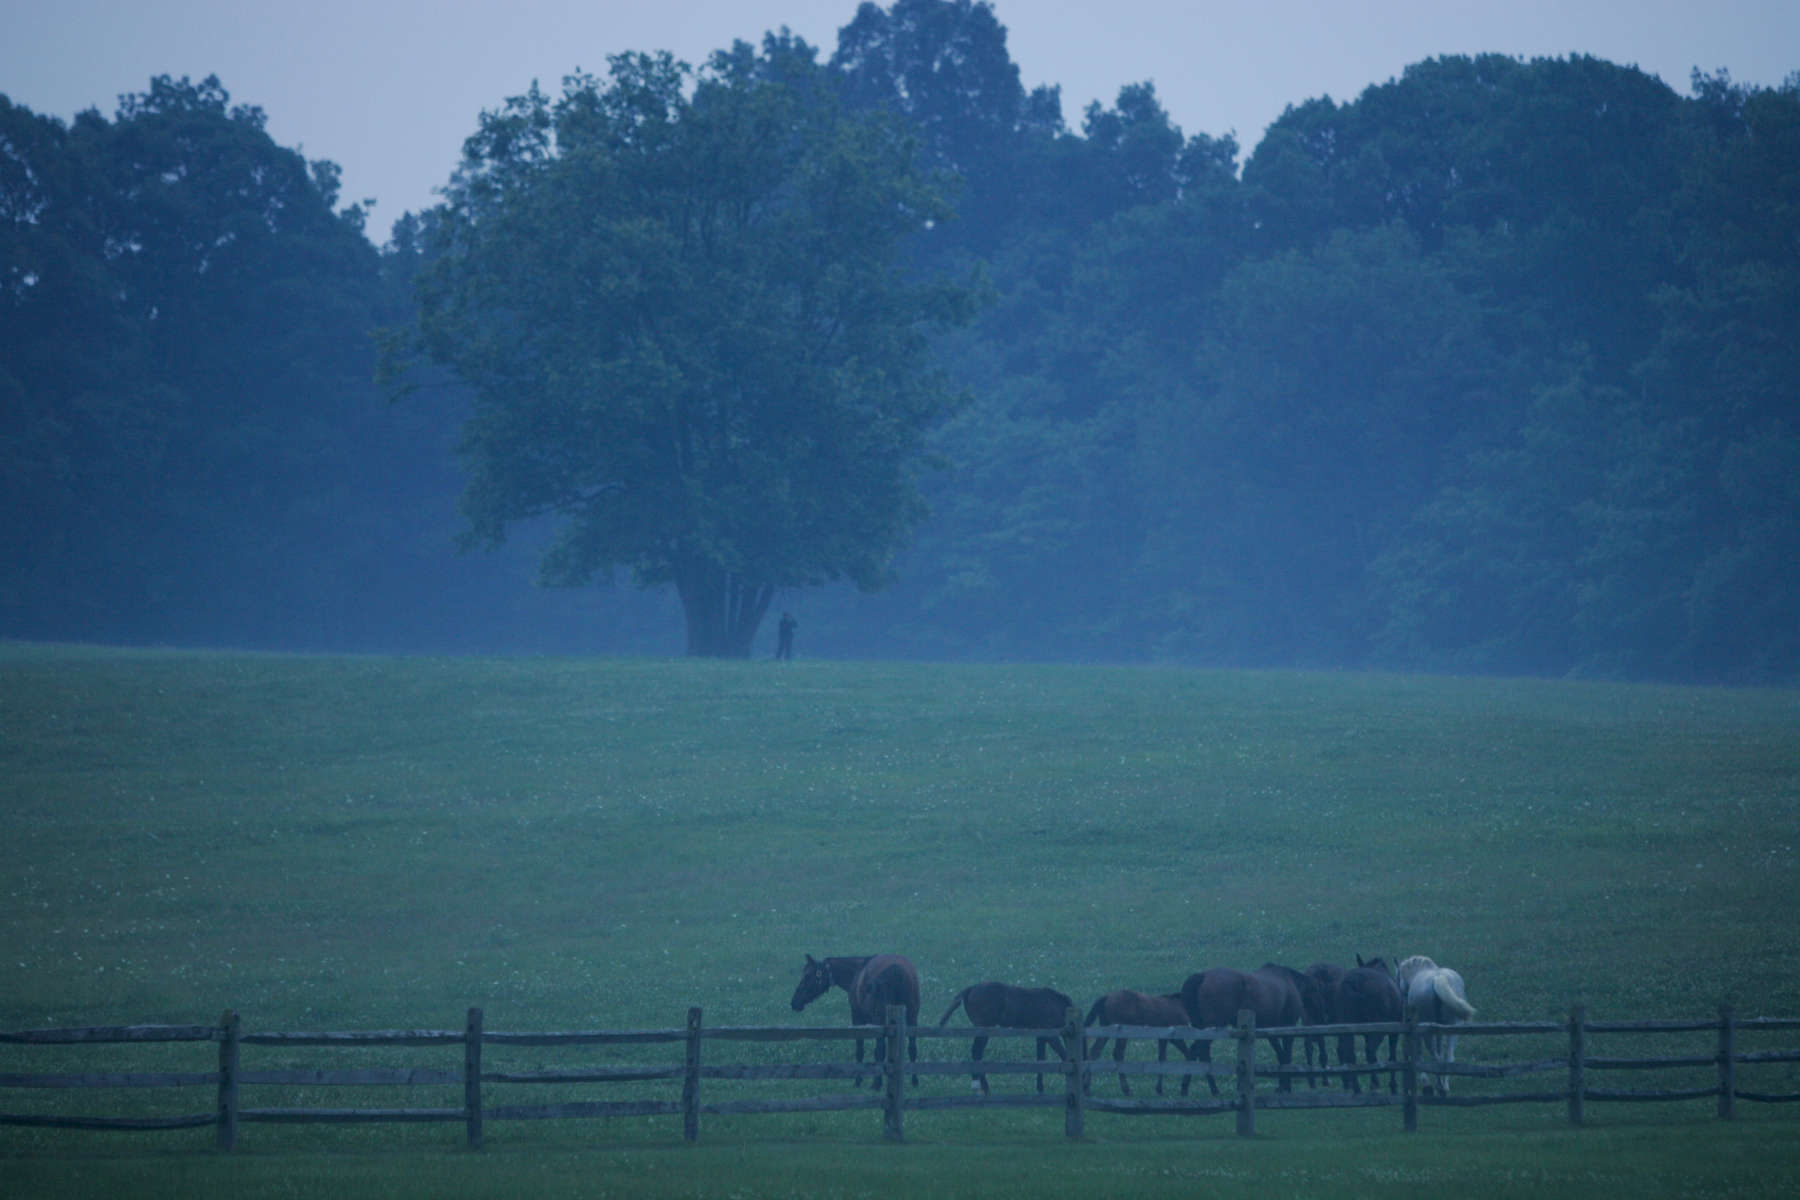 Digital: GWB 19:35 Photo Opportunity, Remarks to and dinner for Victory 2004. Pastoral scene of horses, CAT team member on the hill.u Kirtland Hills, Ohio.